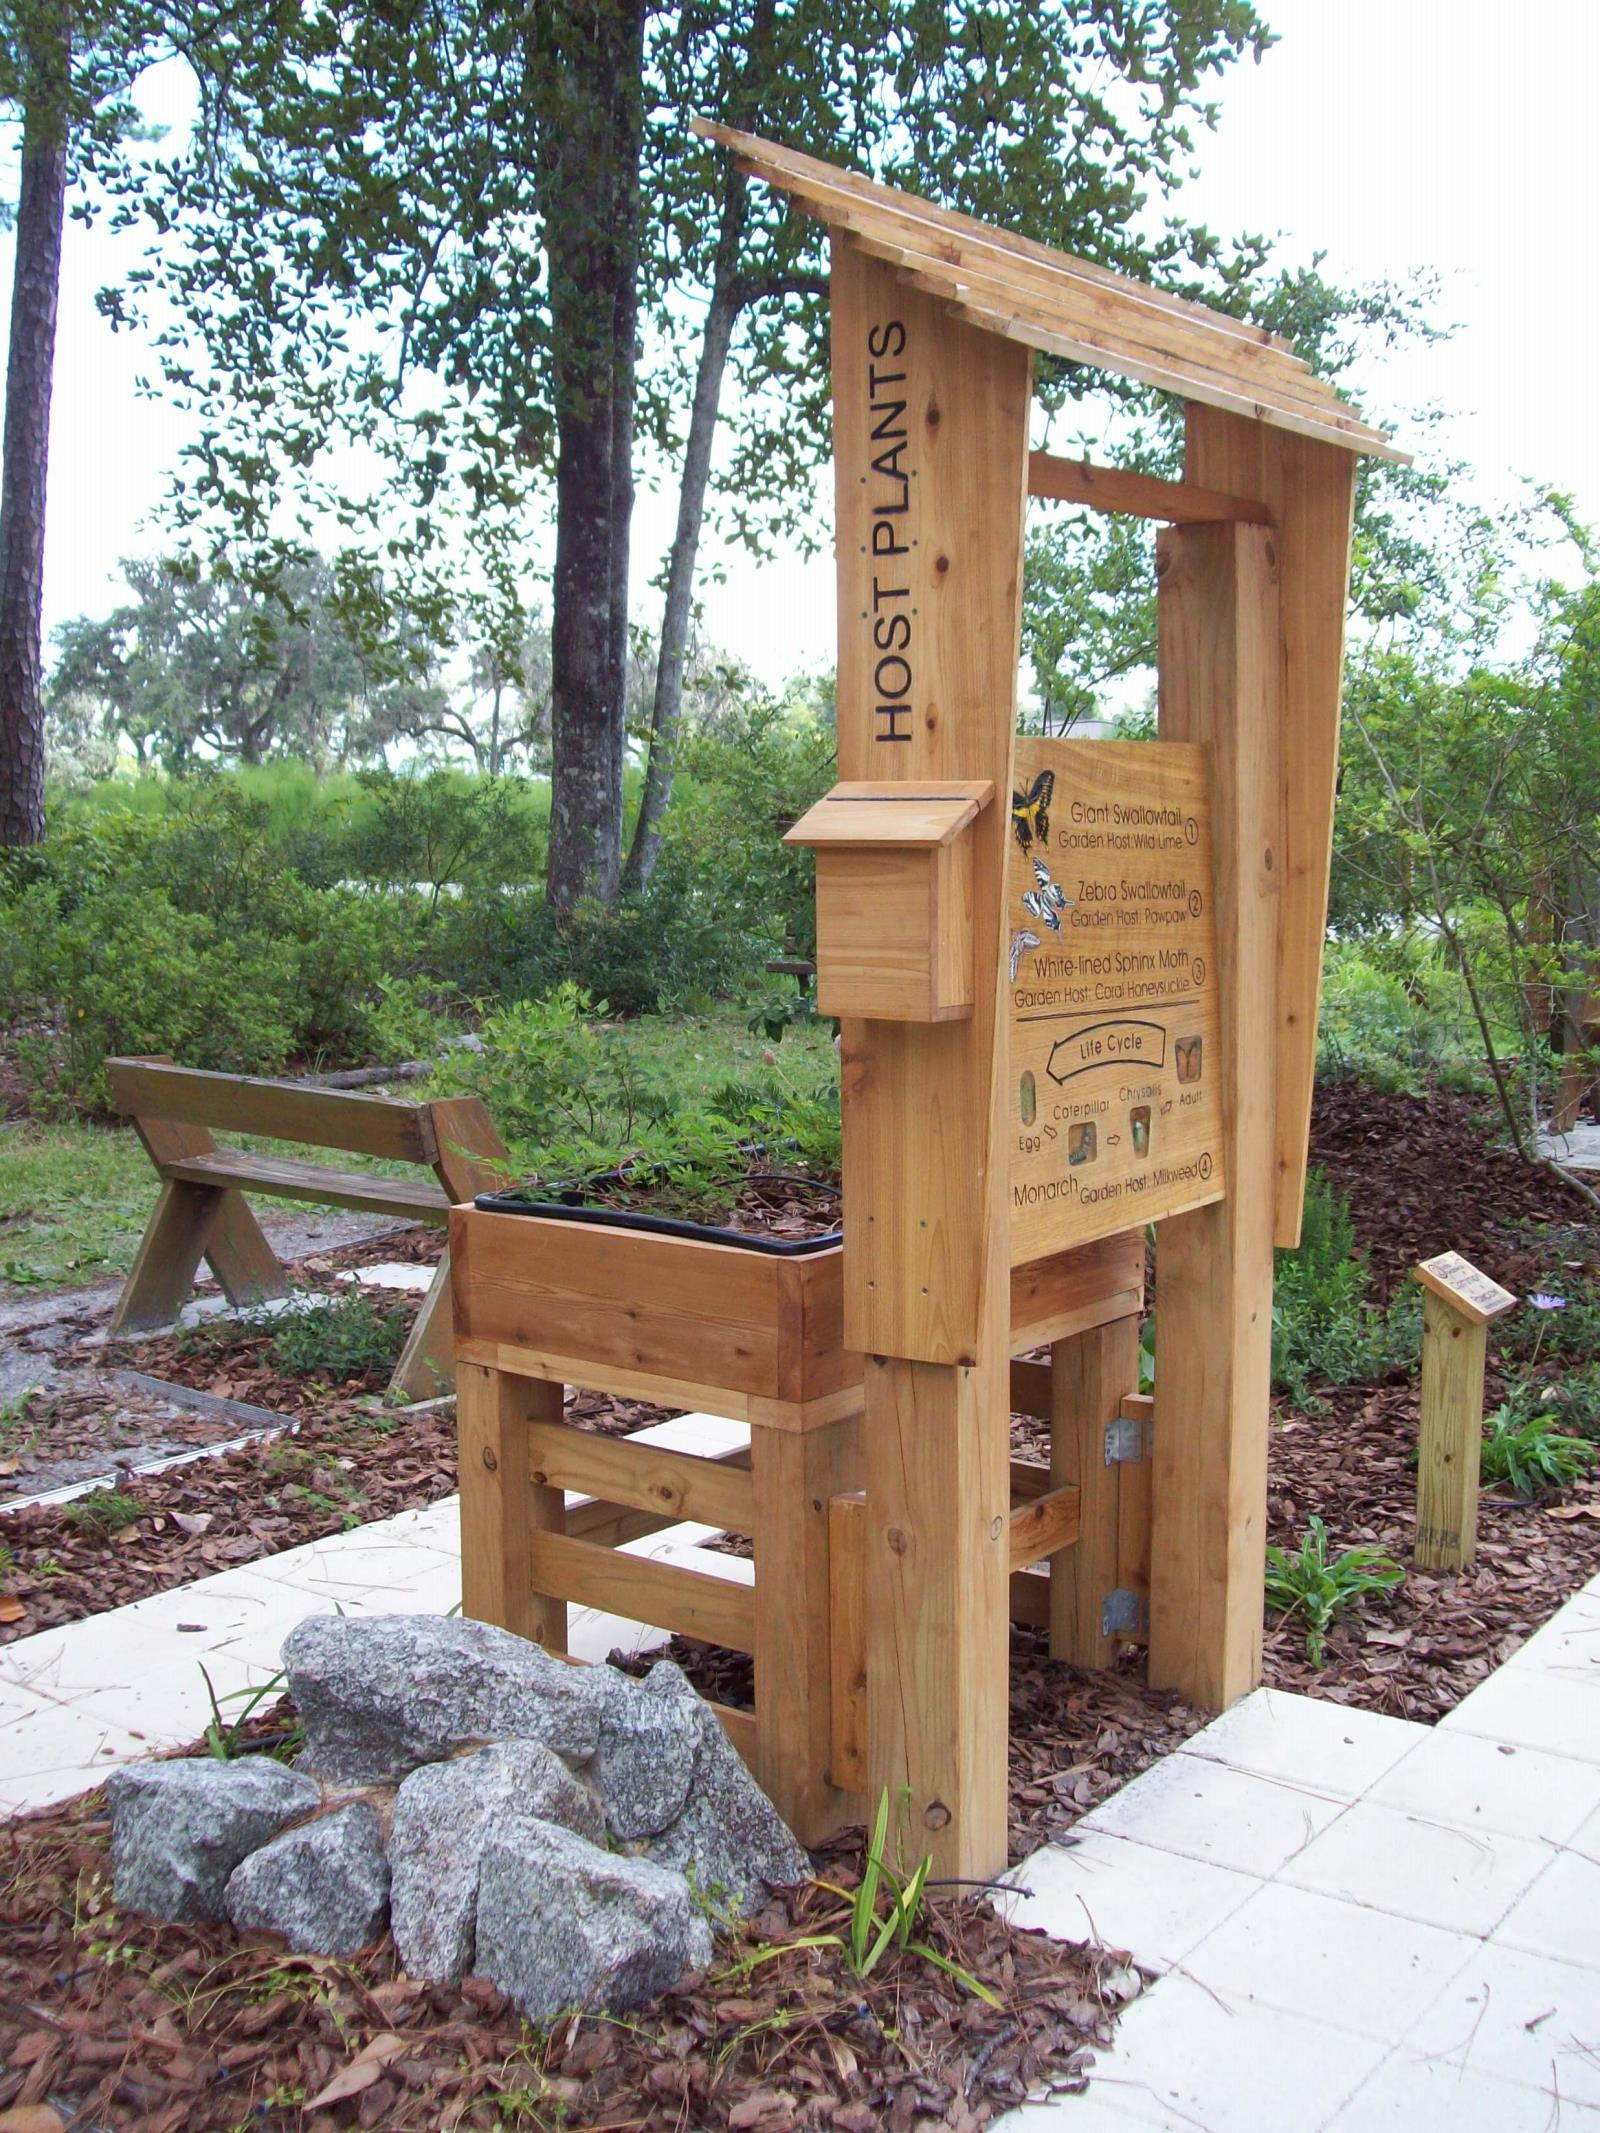 Pollinator kiosk with a bench, rock, sidewalk, and raised flower bed